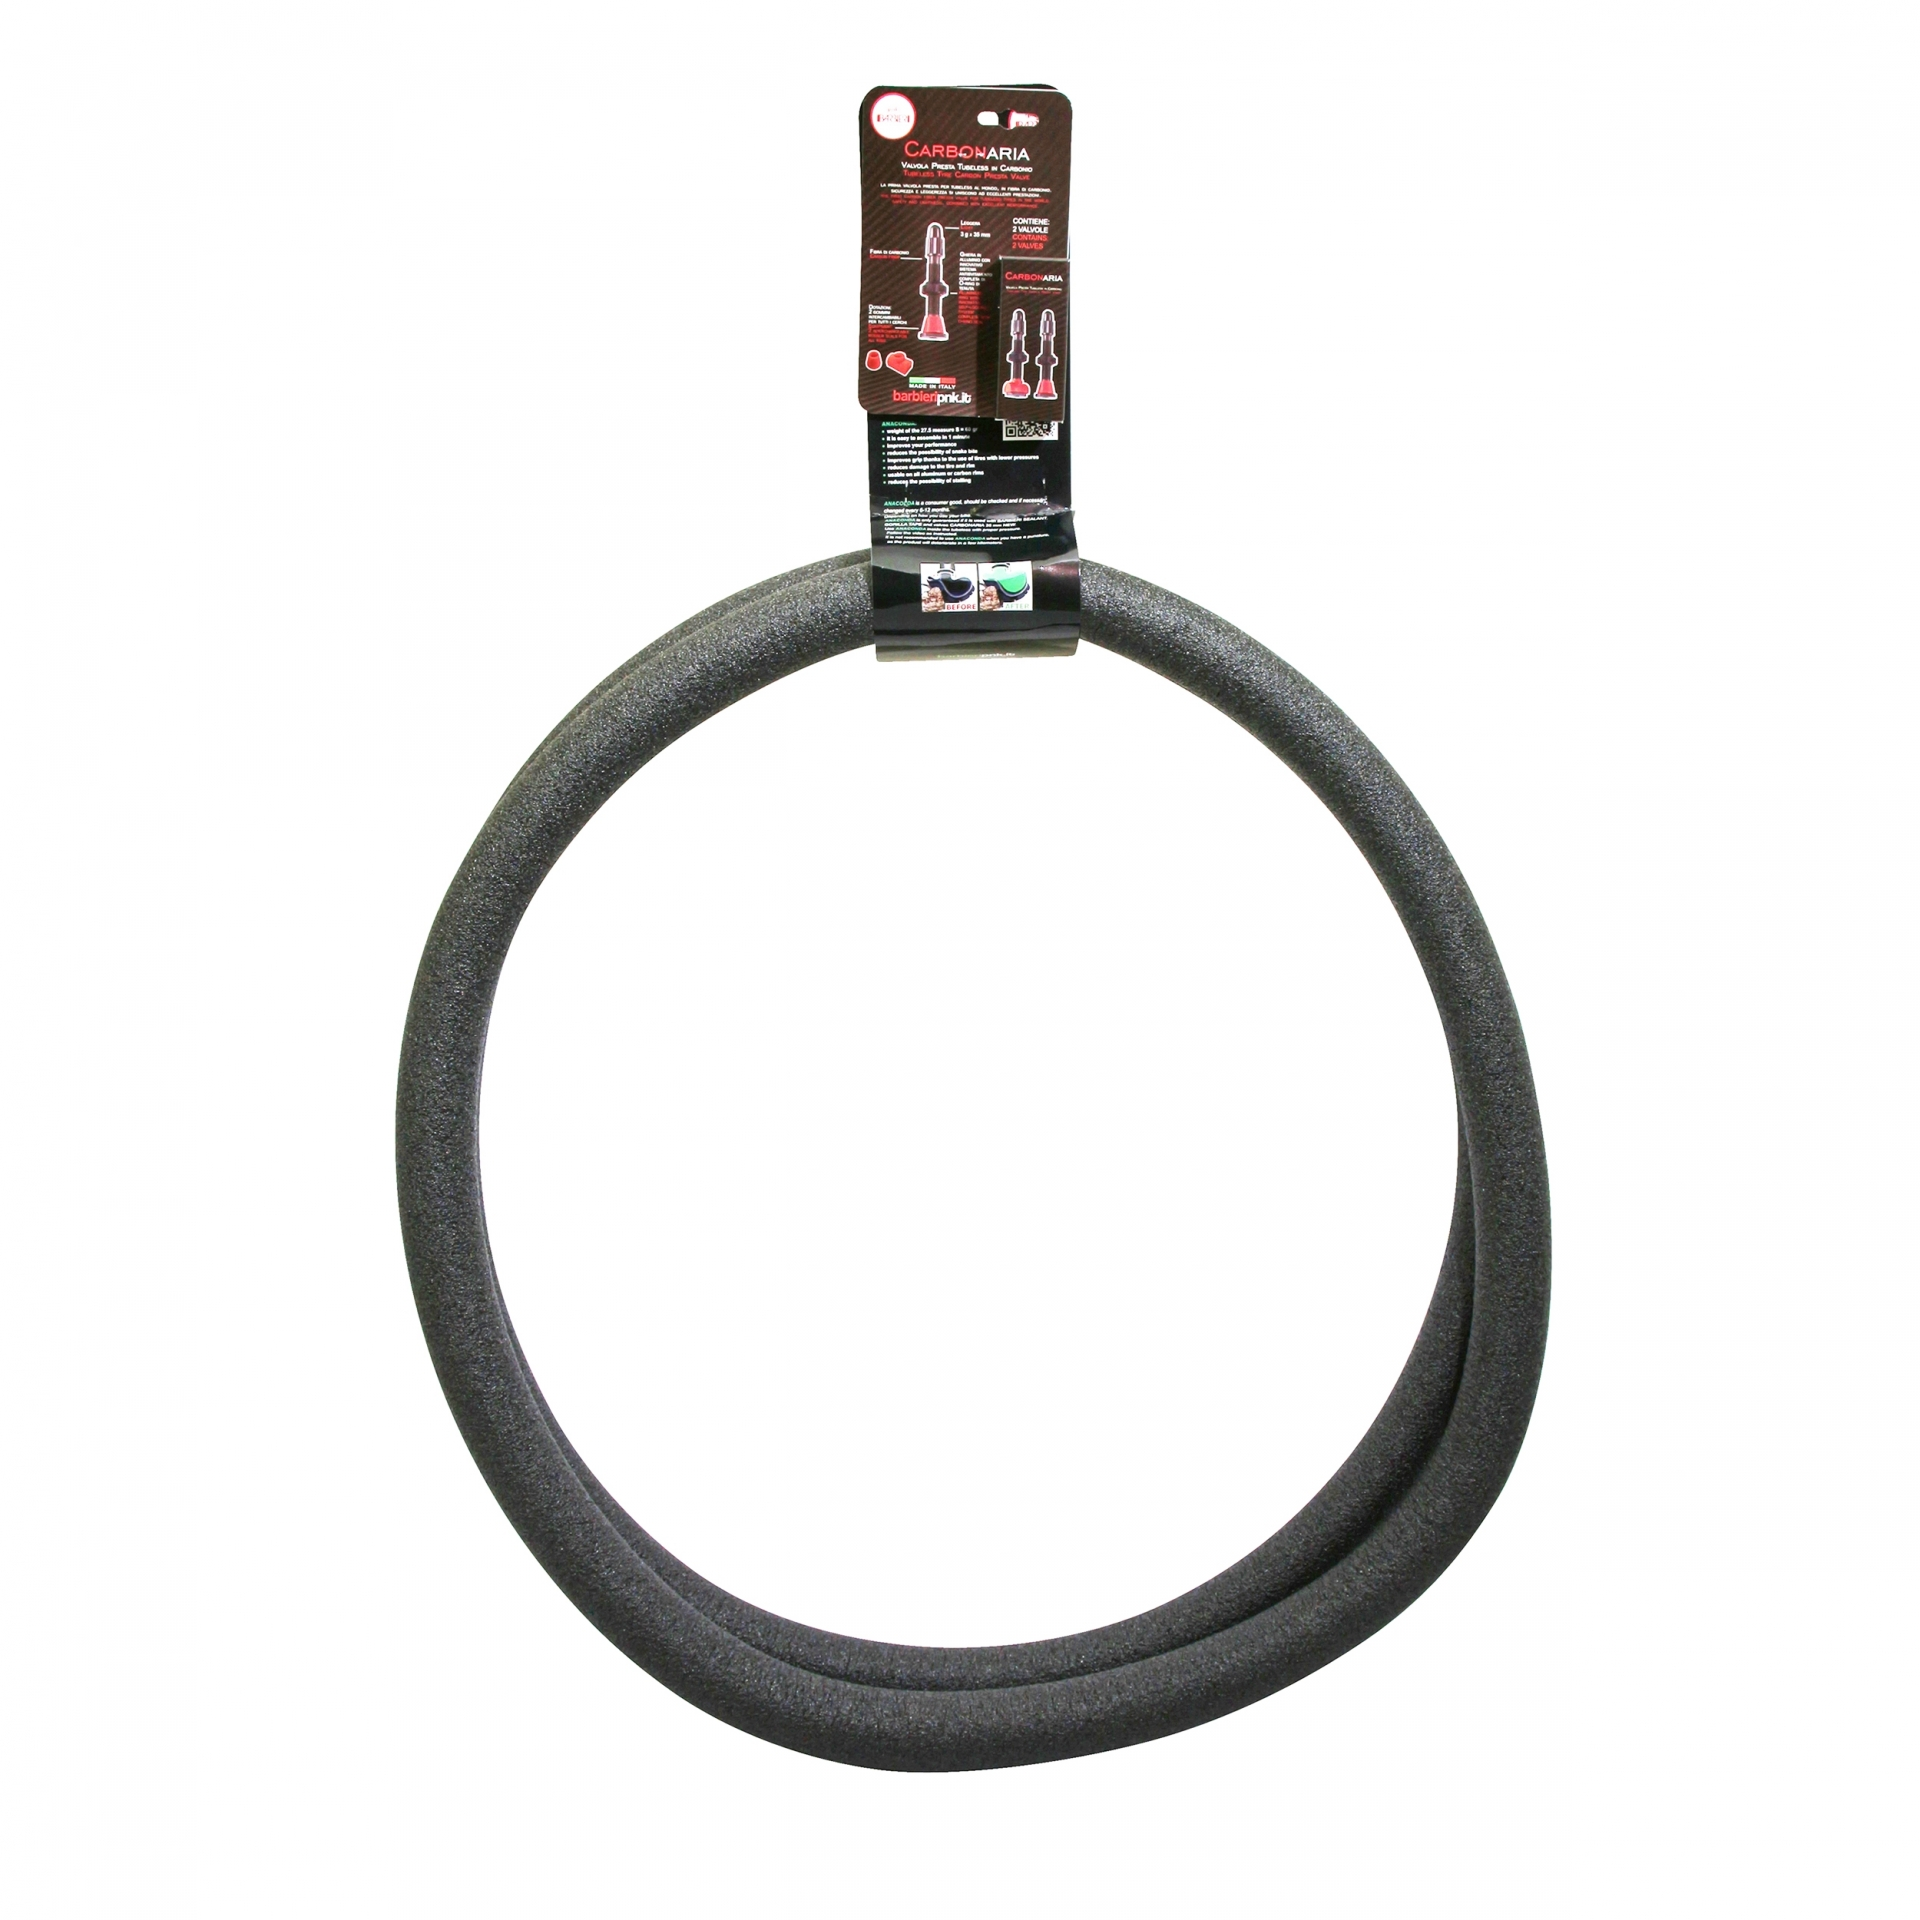 Mousse anti-pincement pneu VTT tubeless Roto Anaconda 27.5 x 2.00-2.25 (Paire)